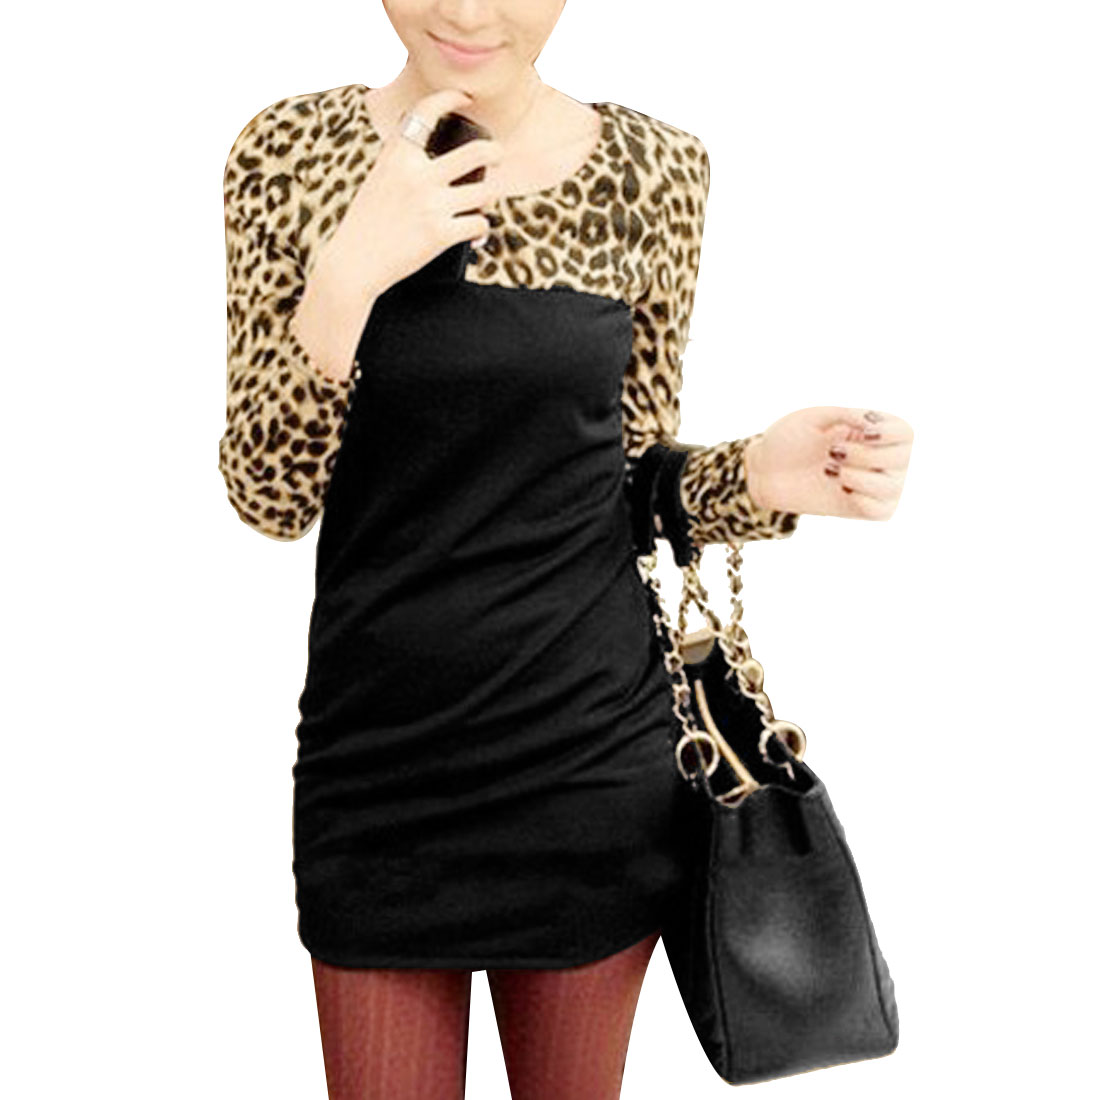 Leopard Pattern Round Neck Long Sleeves Black XS Mini Dress for Women